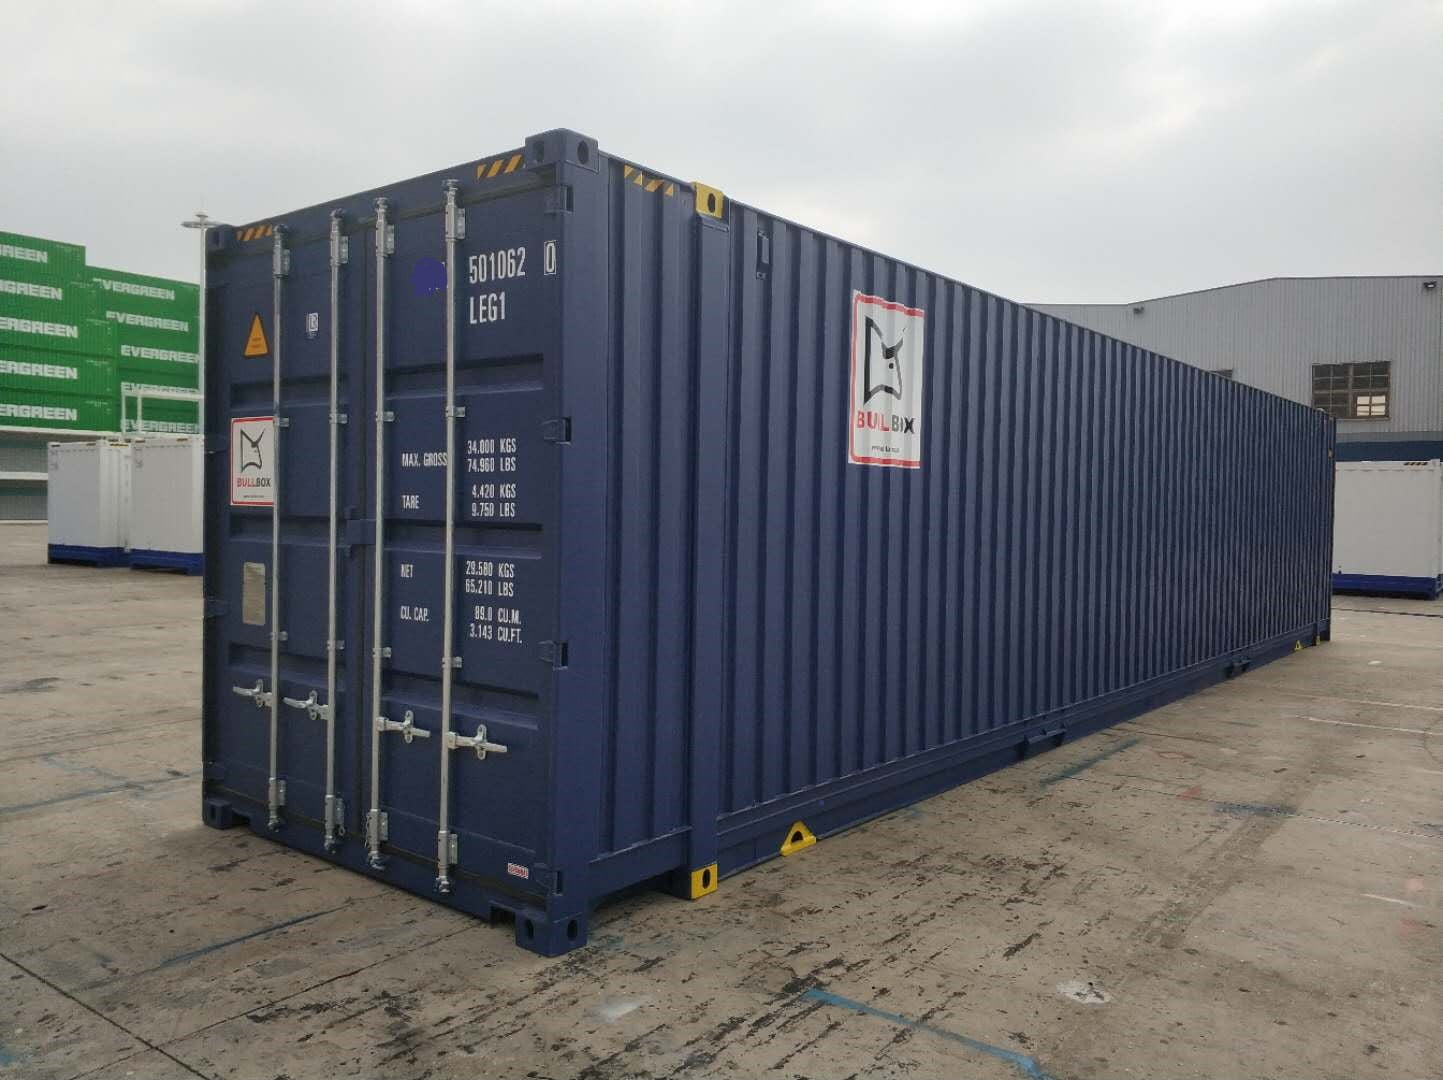 45 pies pallet wide high cube - 45' HC Pallet Wide container